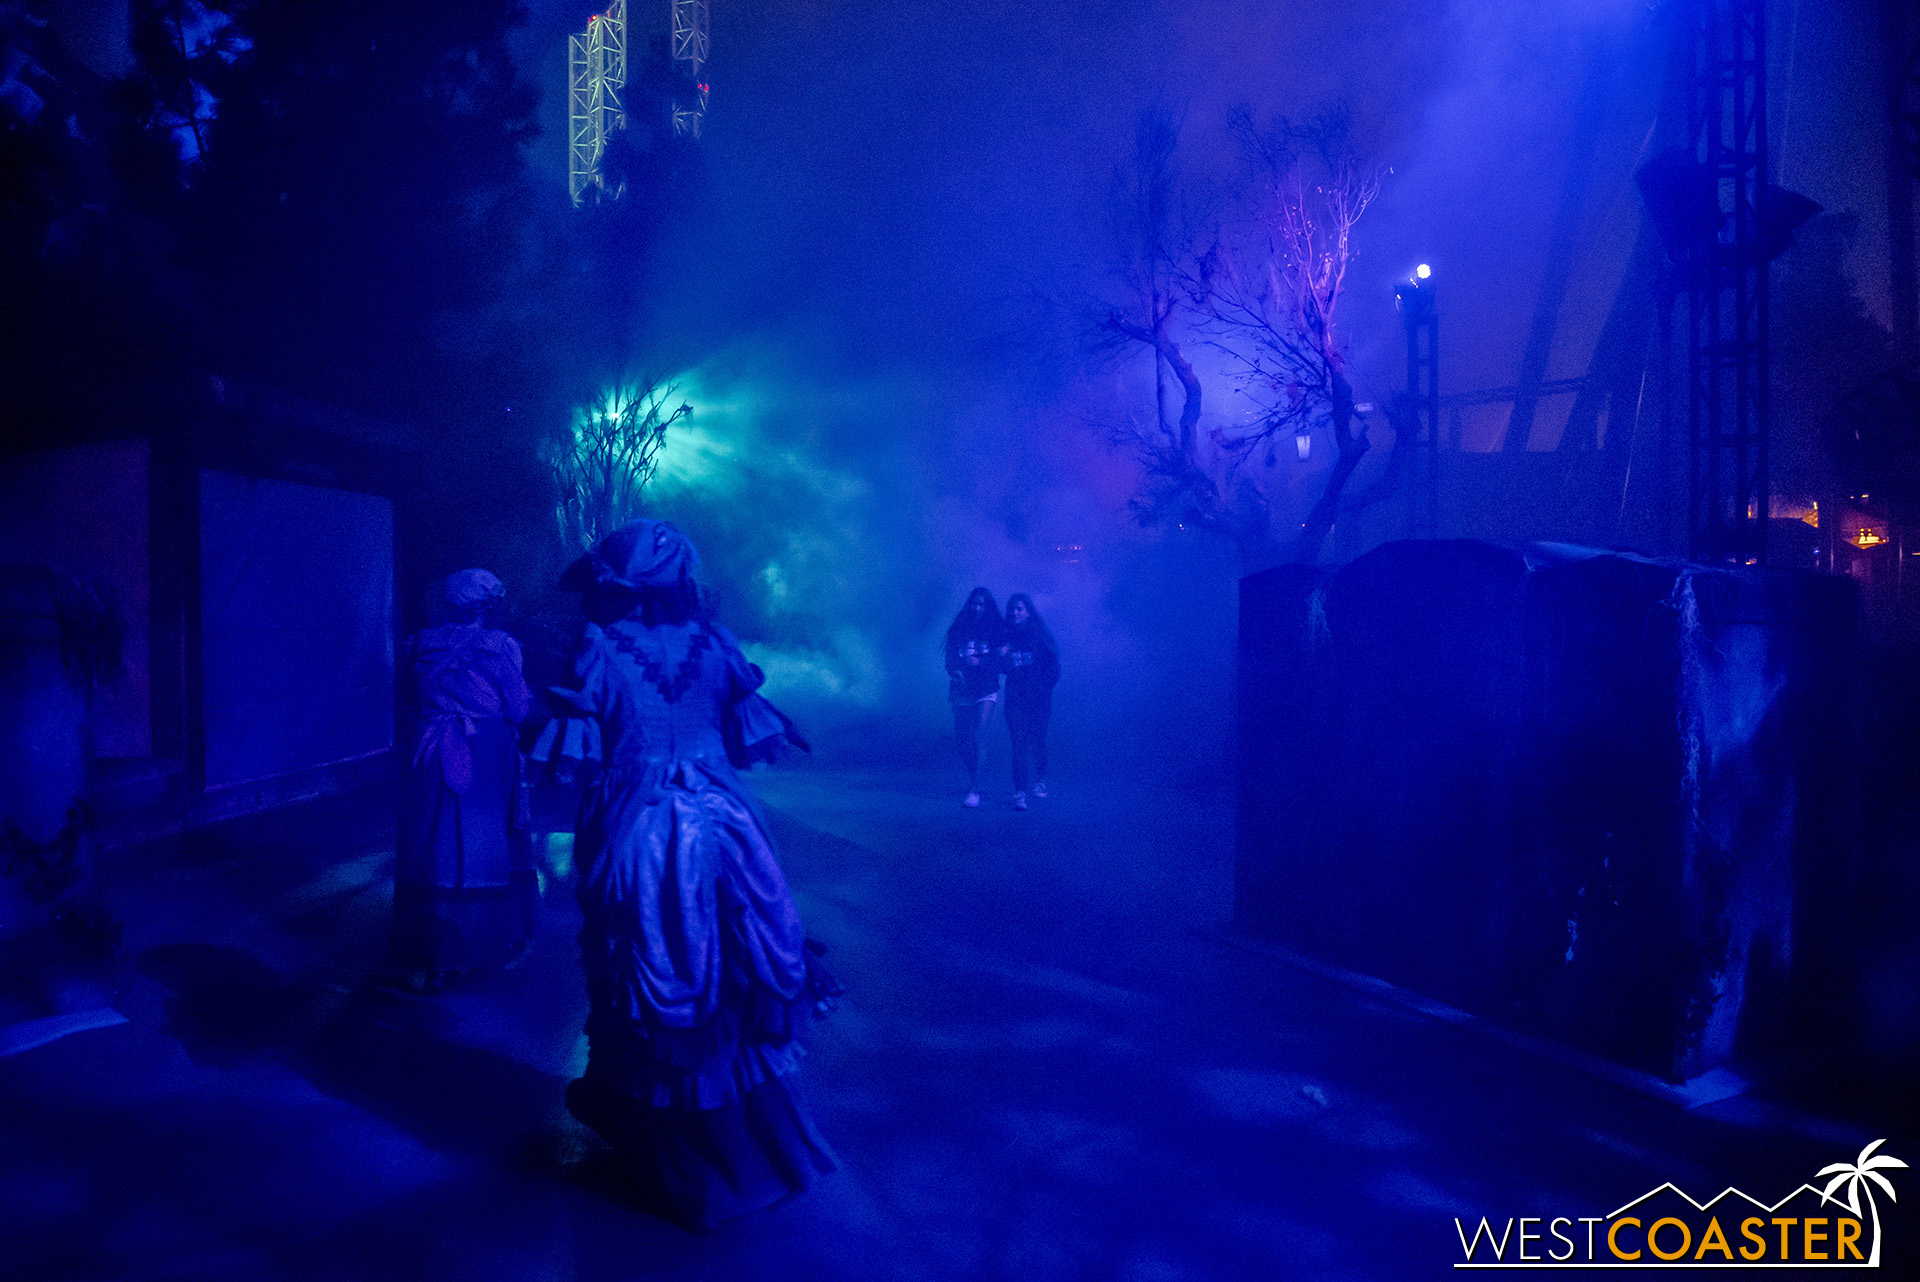 Most of the sets are movable, but in the blue fog, they look great!